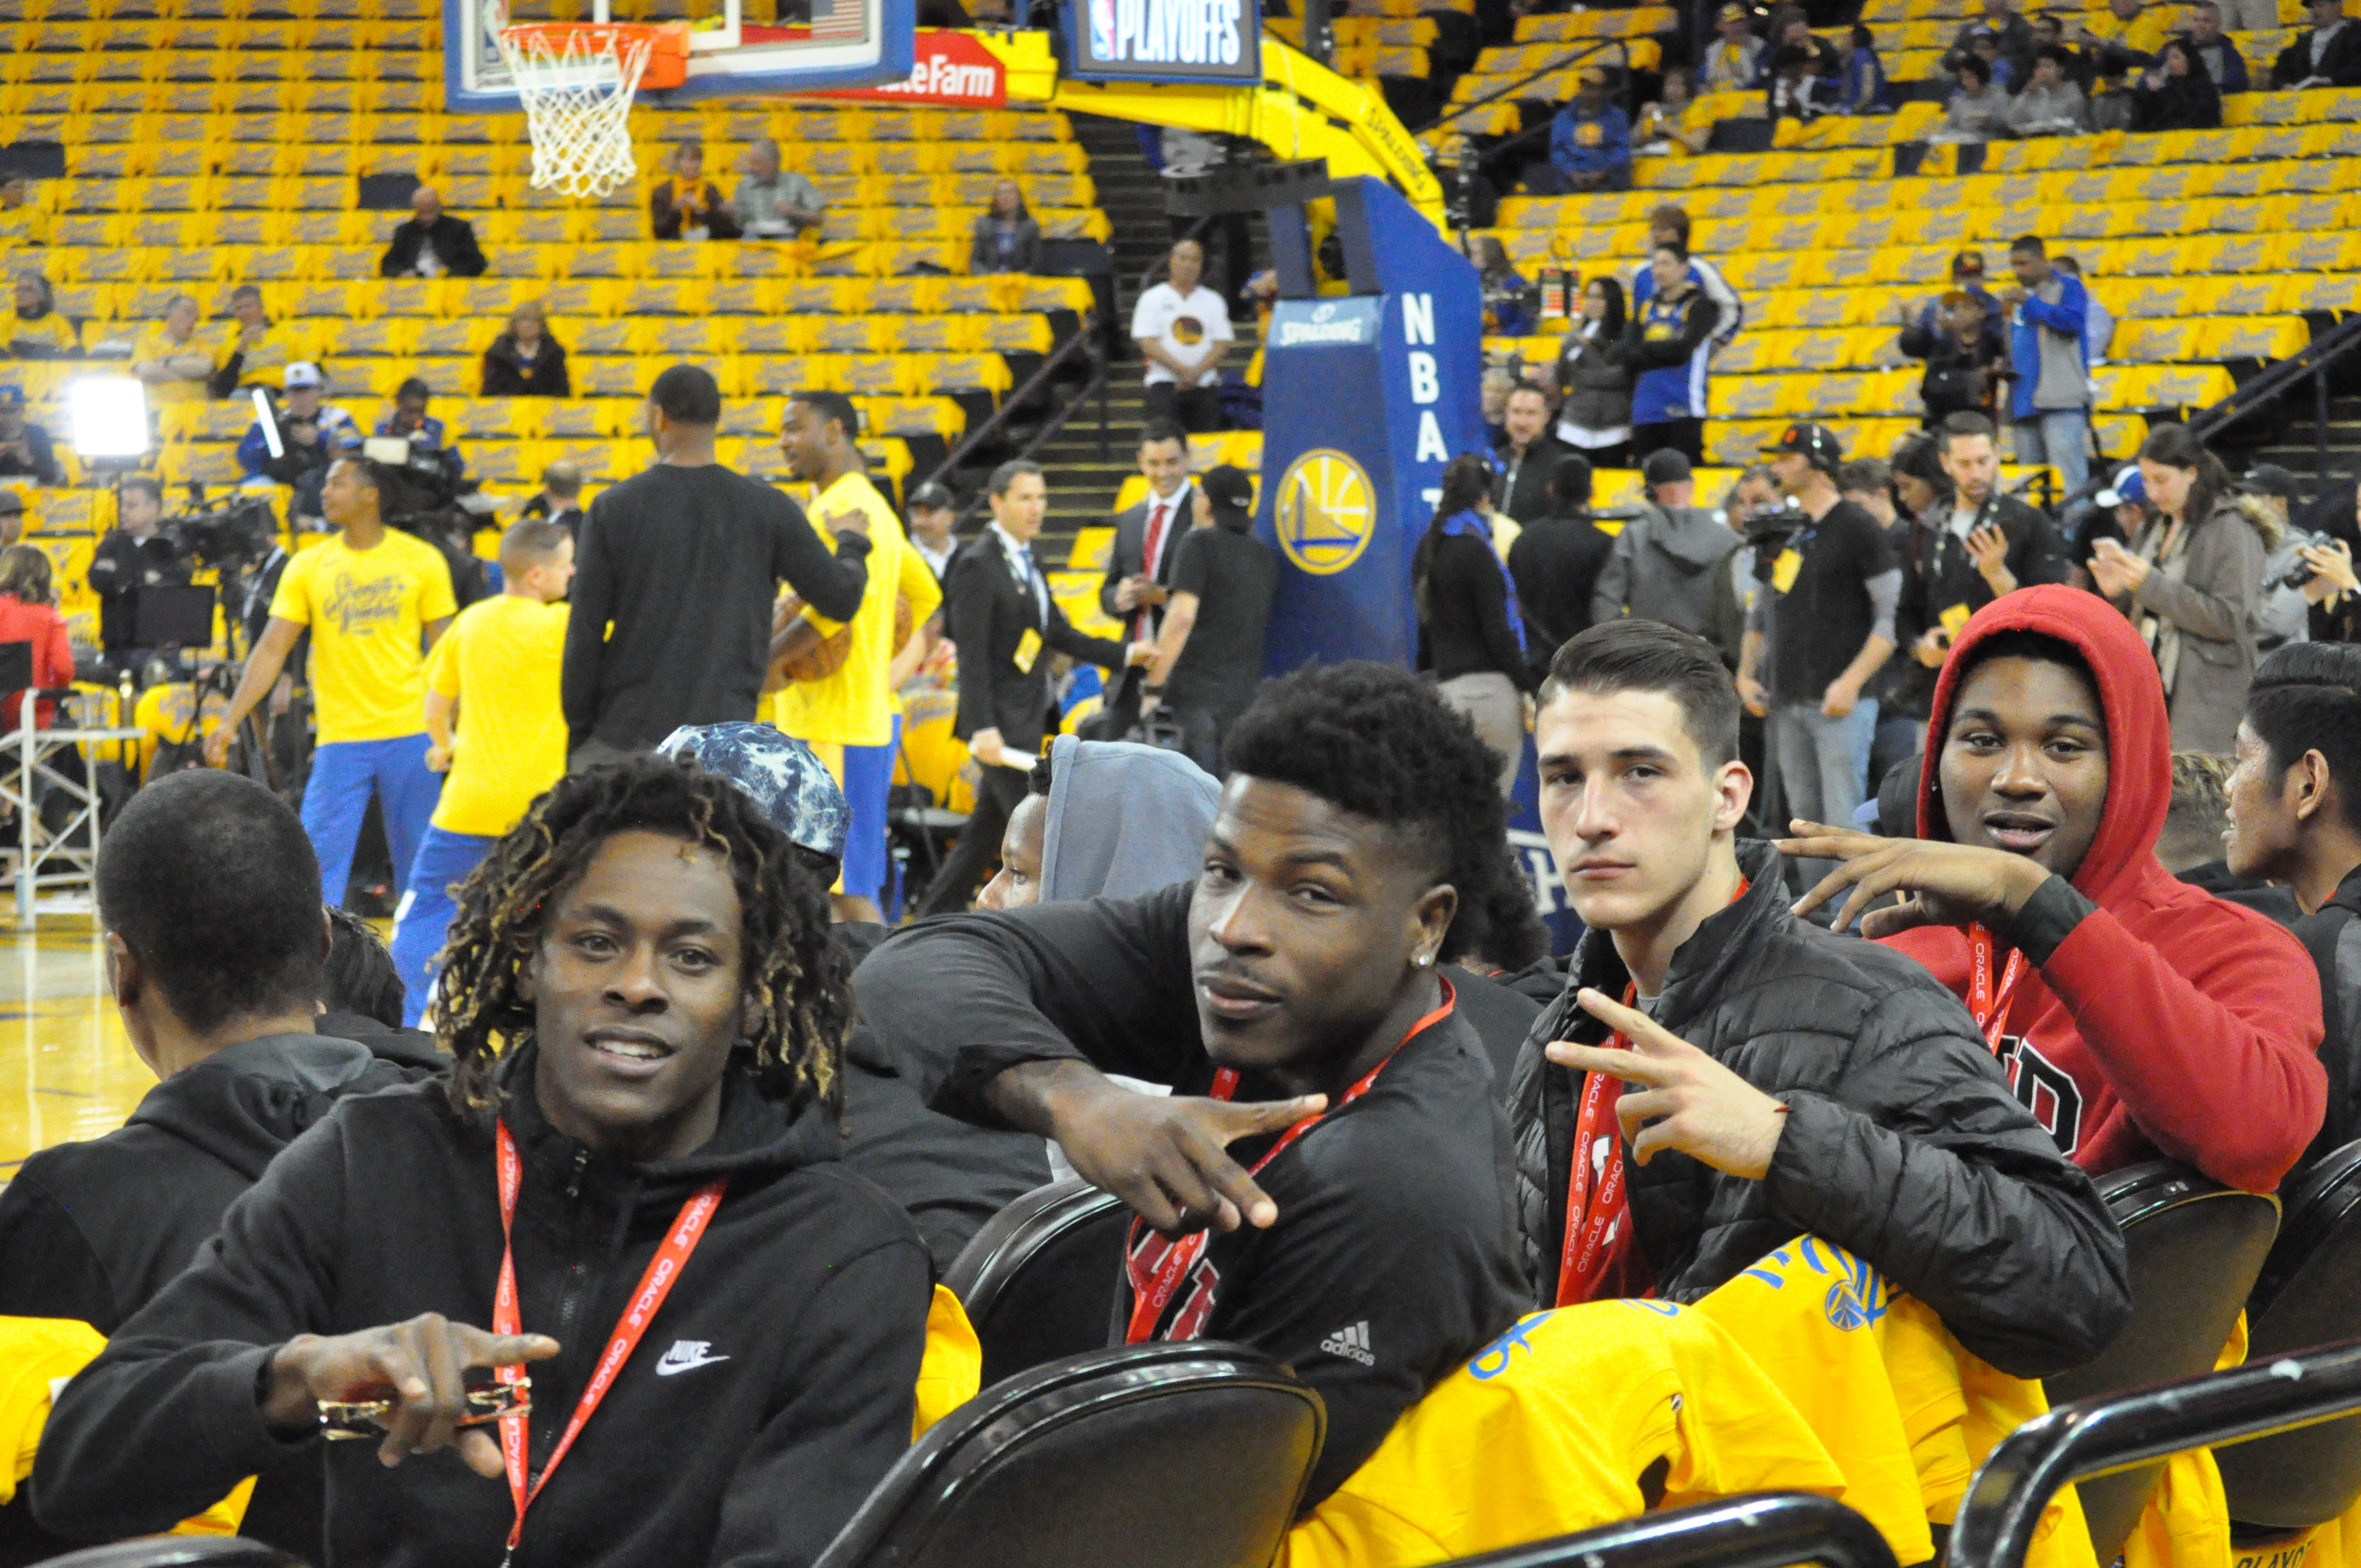 Rams men's basketball players Terrell Brown, left to right, Dexter Hood, Eddy Ionesco, and Lewis Hayes sit court side during Warriors warm-up session on April 16, 2018. Photo by Peter J. Suter/The Guardsman.